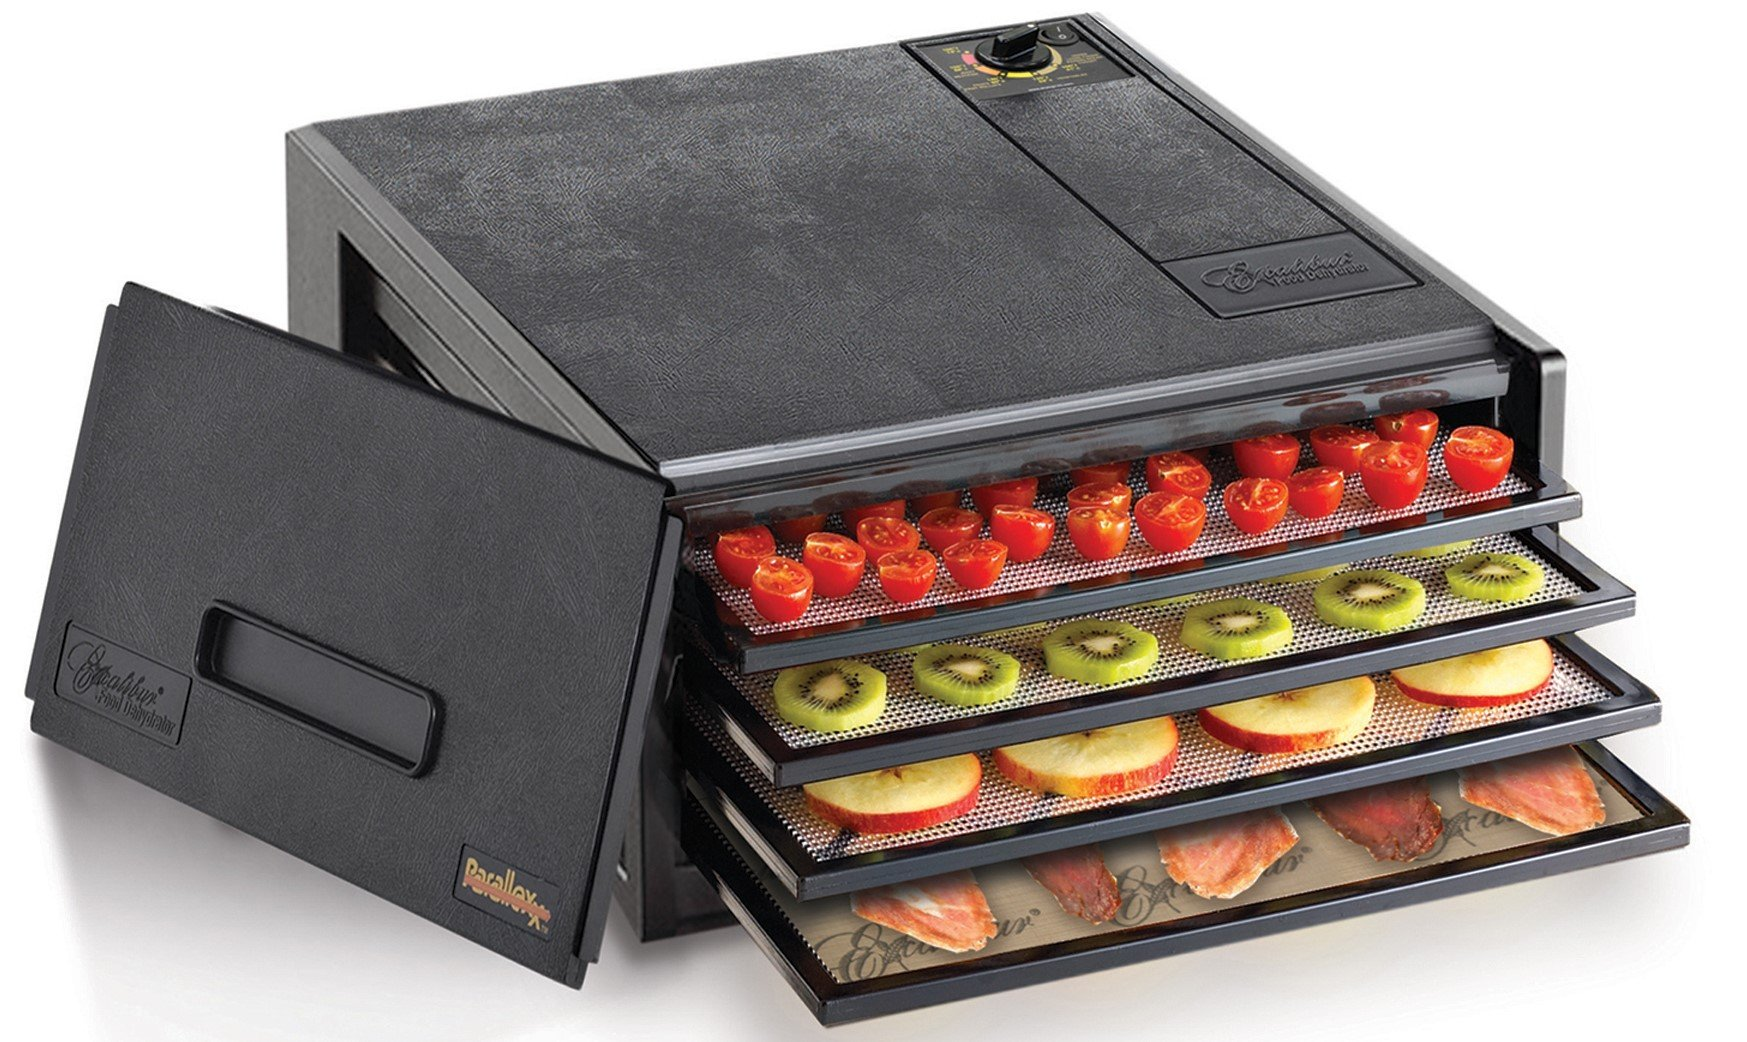 Excalibur 2400 4-Tray Electric Food with with Adjustable Thermostat Accurate Temperature Control Faster and Efficient Drying Includes Guide to Dehydration Made in USA Black